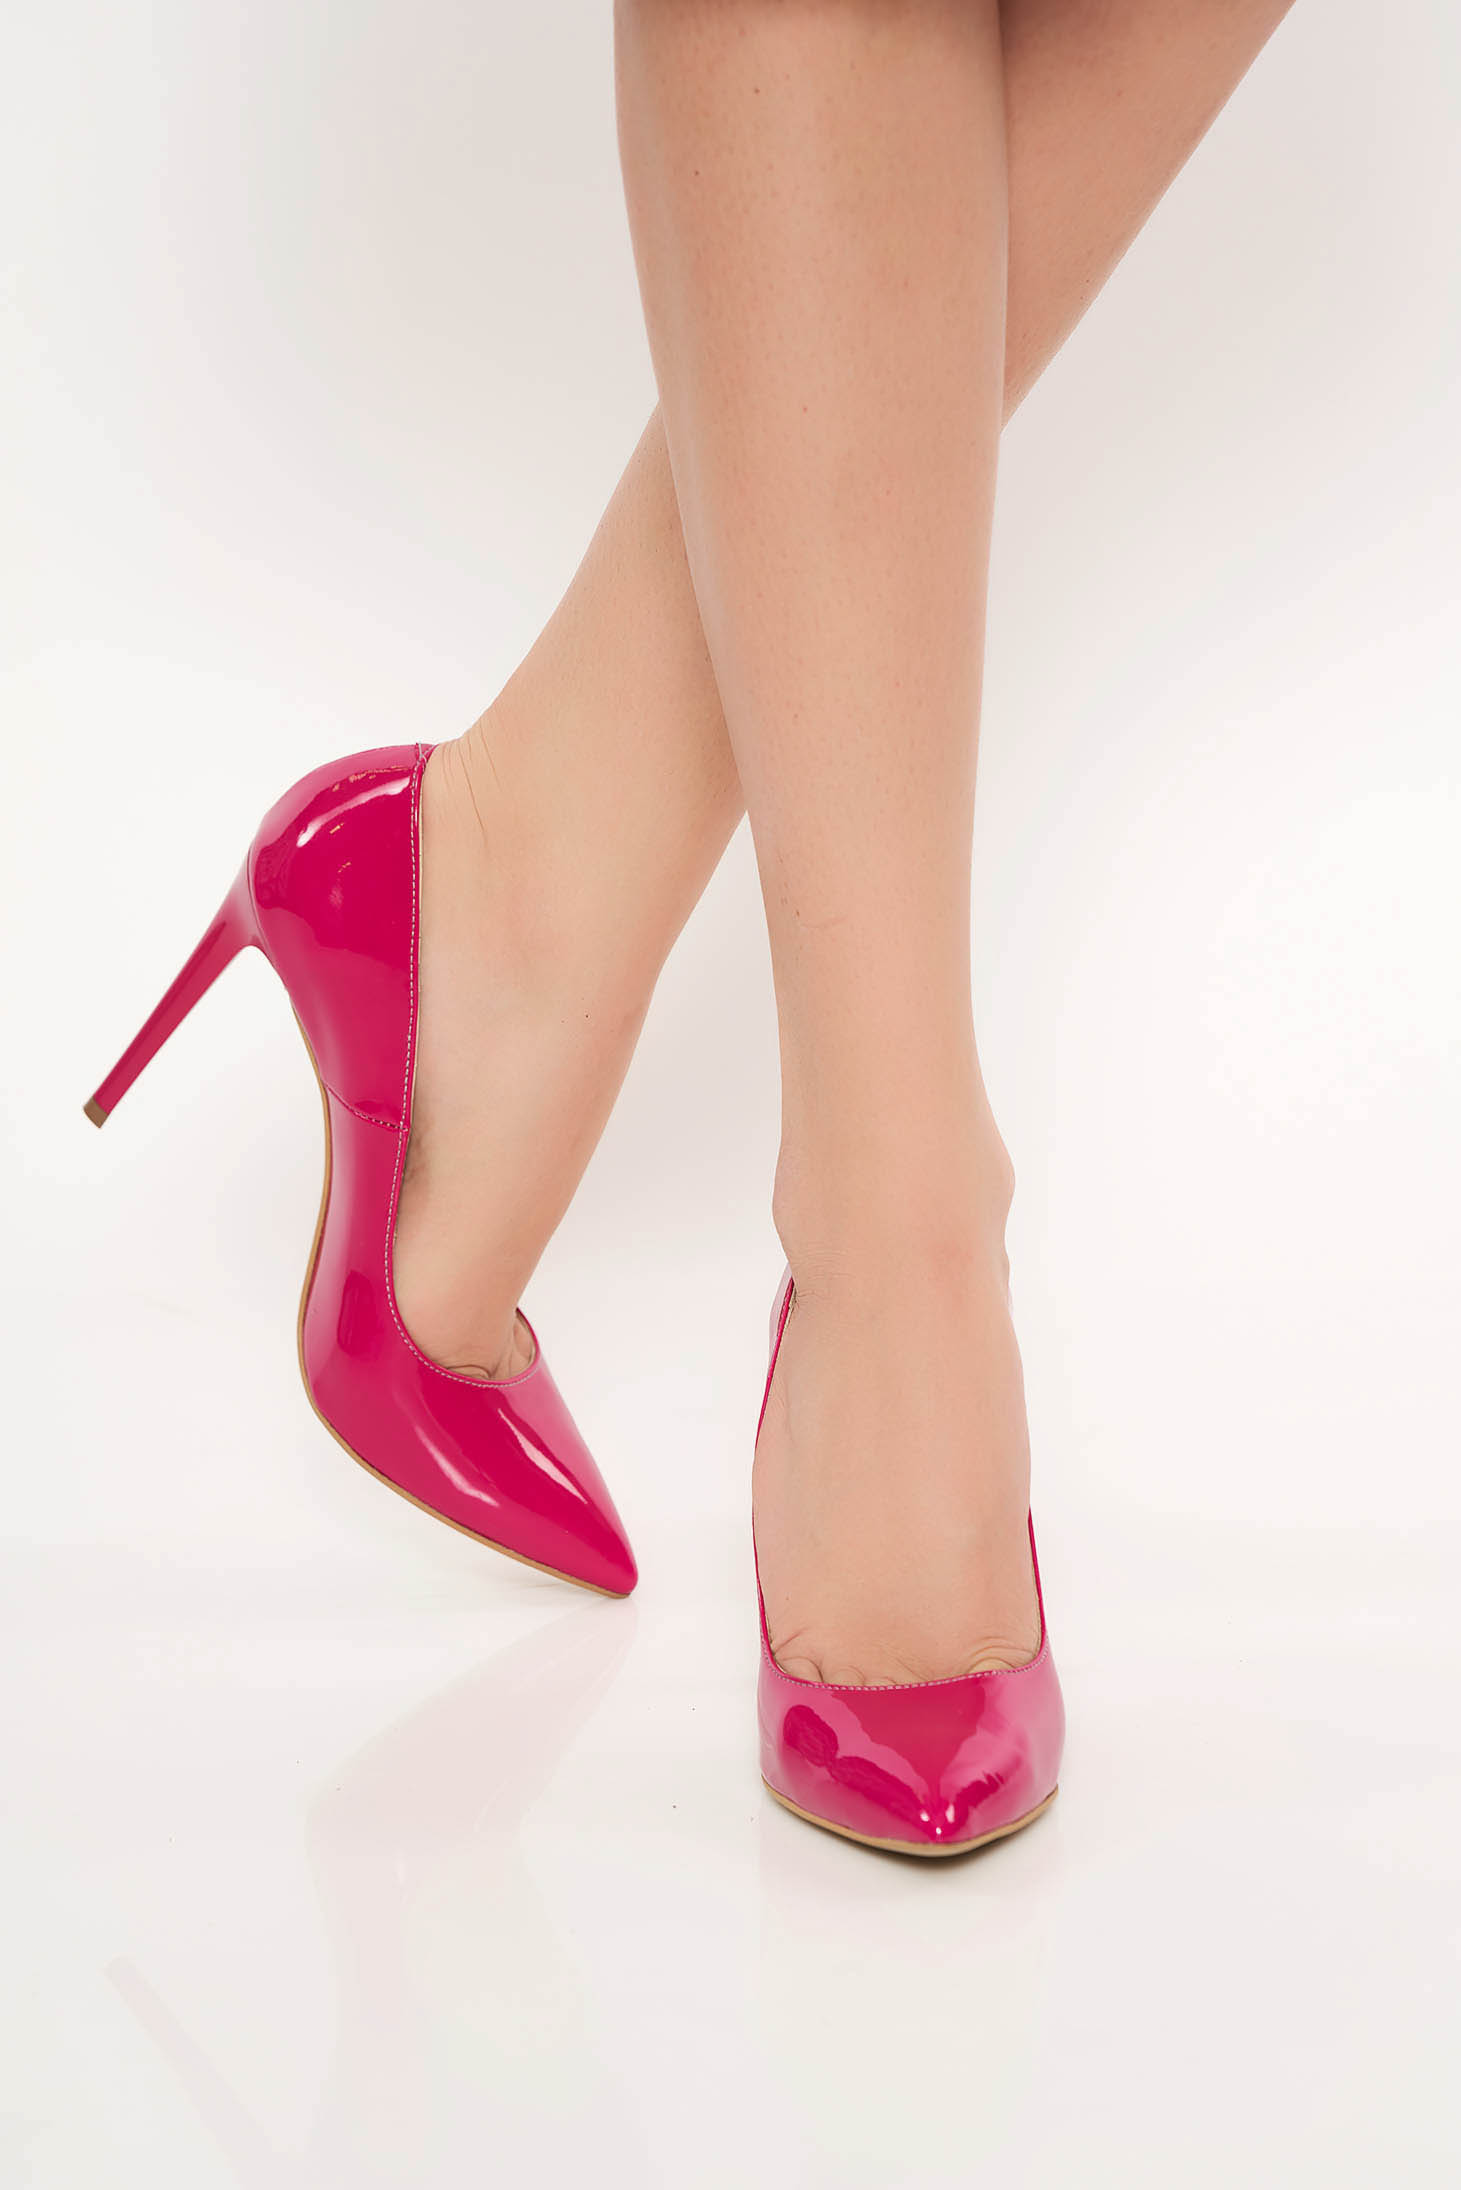 Fuchsia elegant stiletto shoes natural leather with high heels